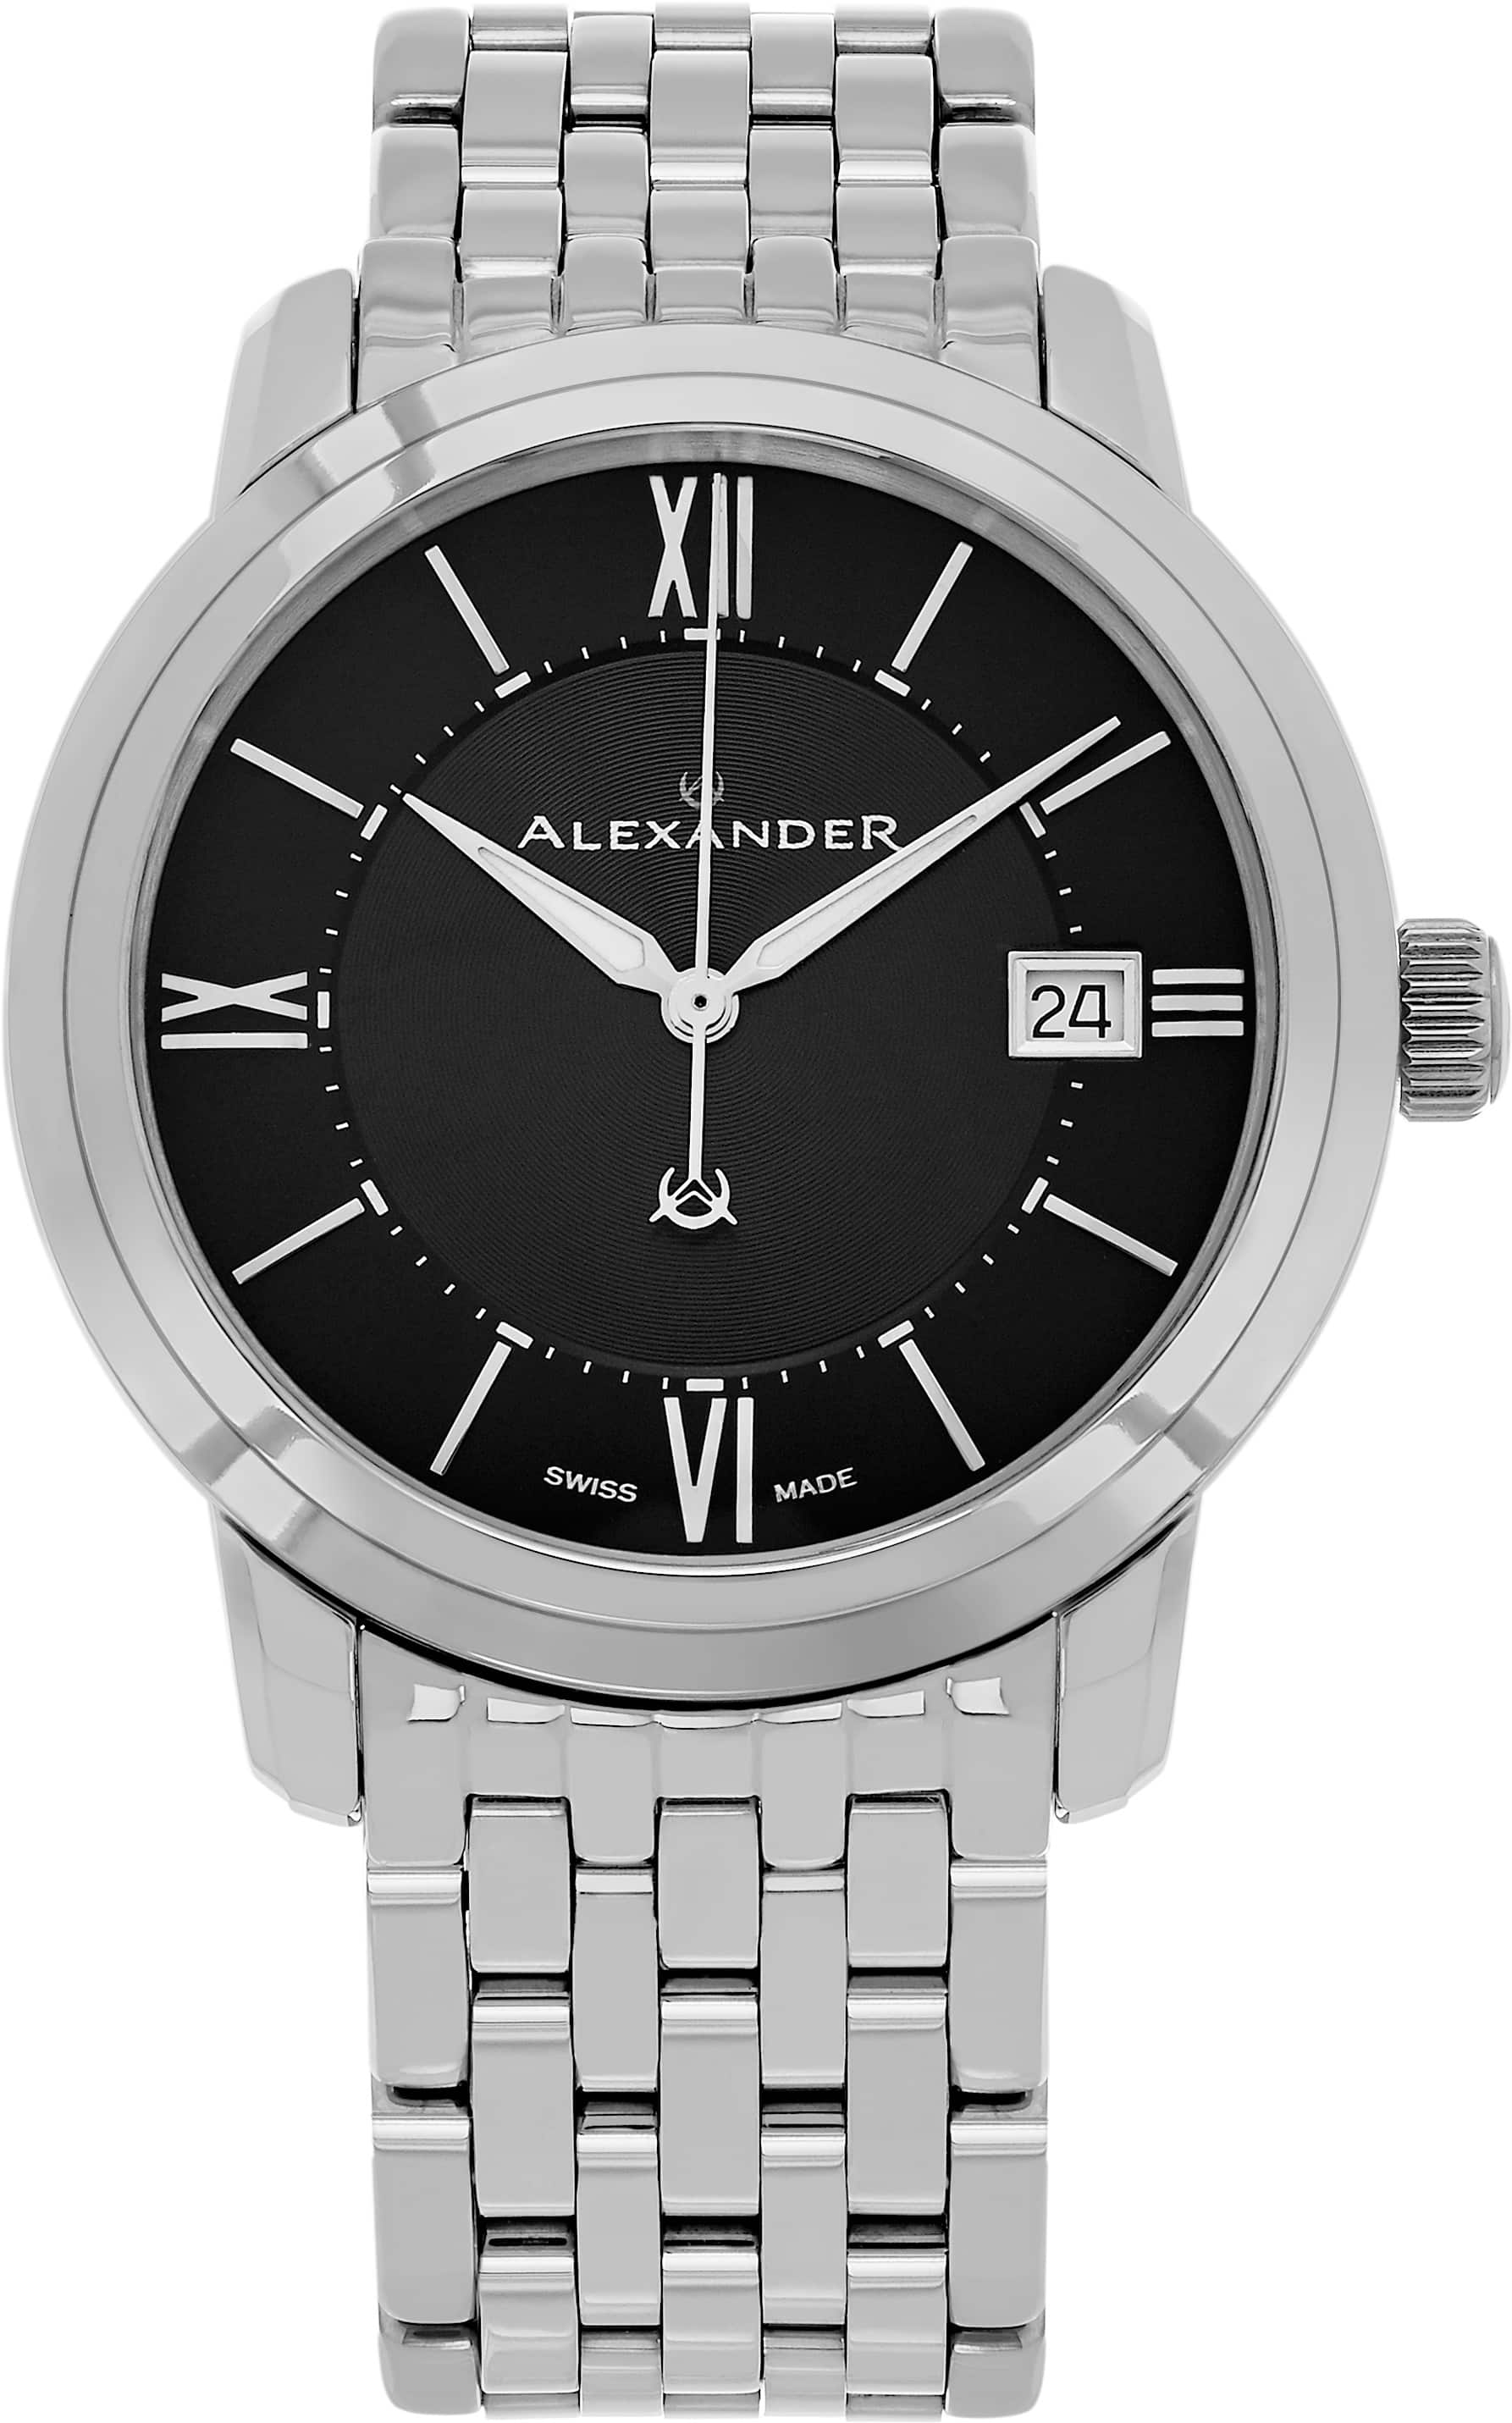 40% off all Alexander watches + a lifetime warranty for Valentine's Day ♥ ♥ ♥ $300